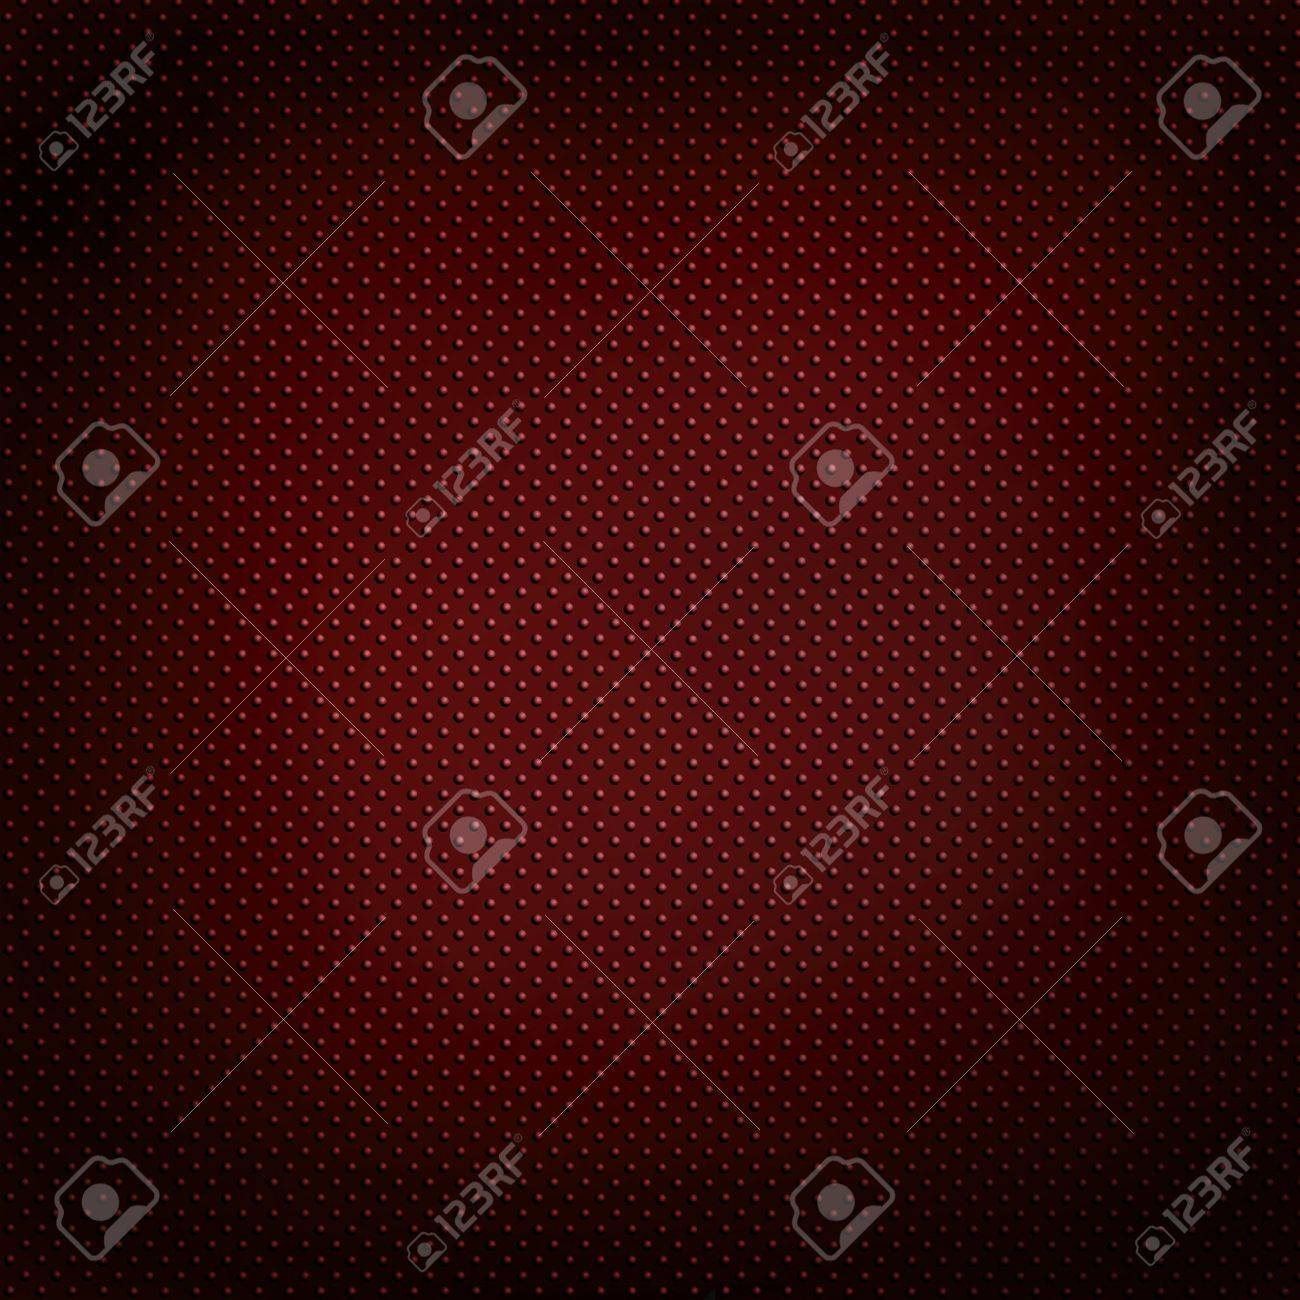 illustrate of grill texture background Stock Photo - 10520757